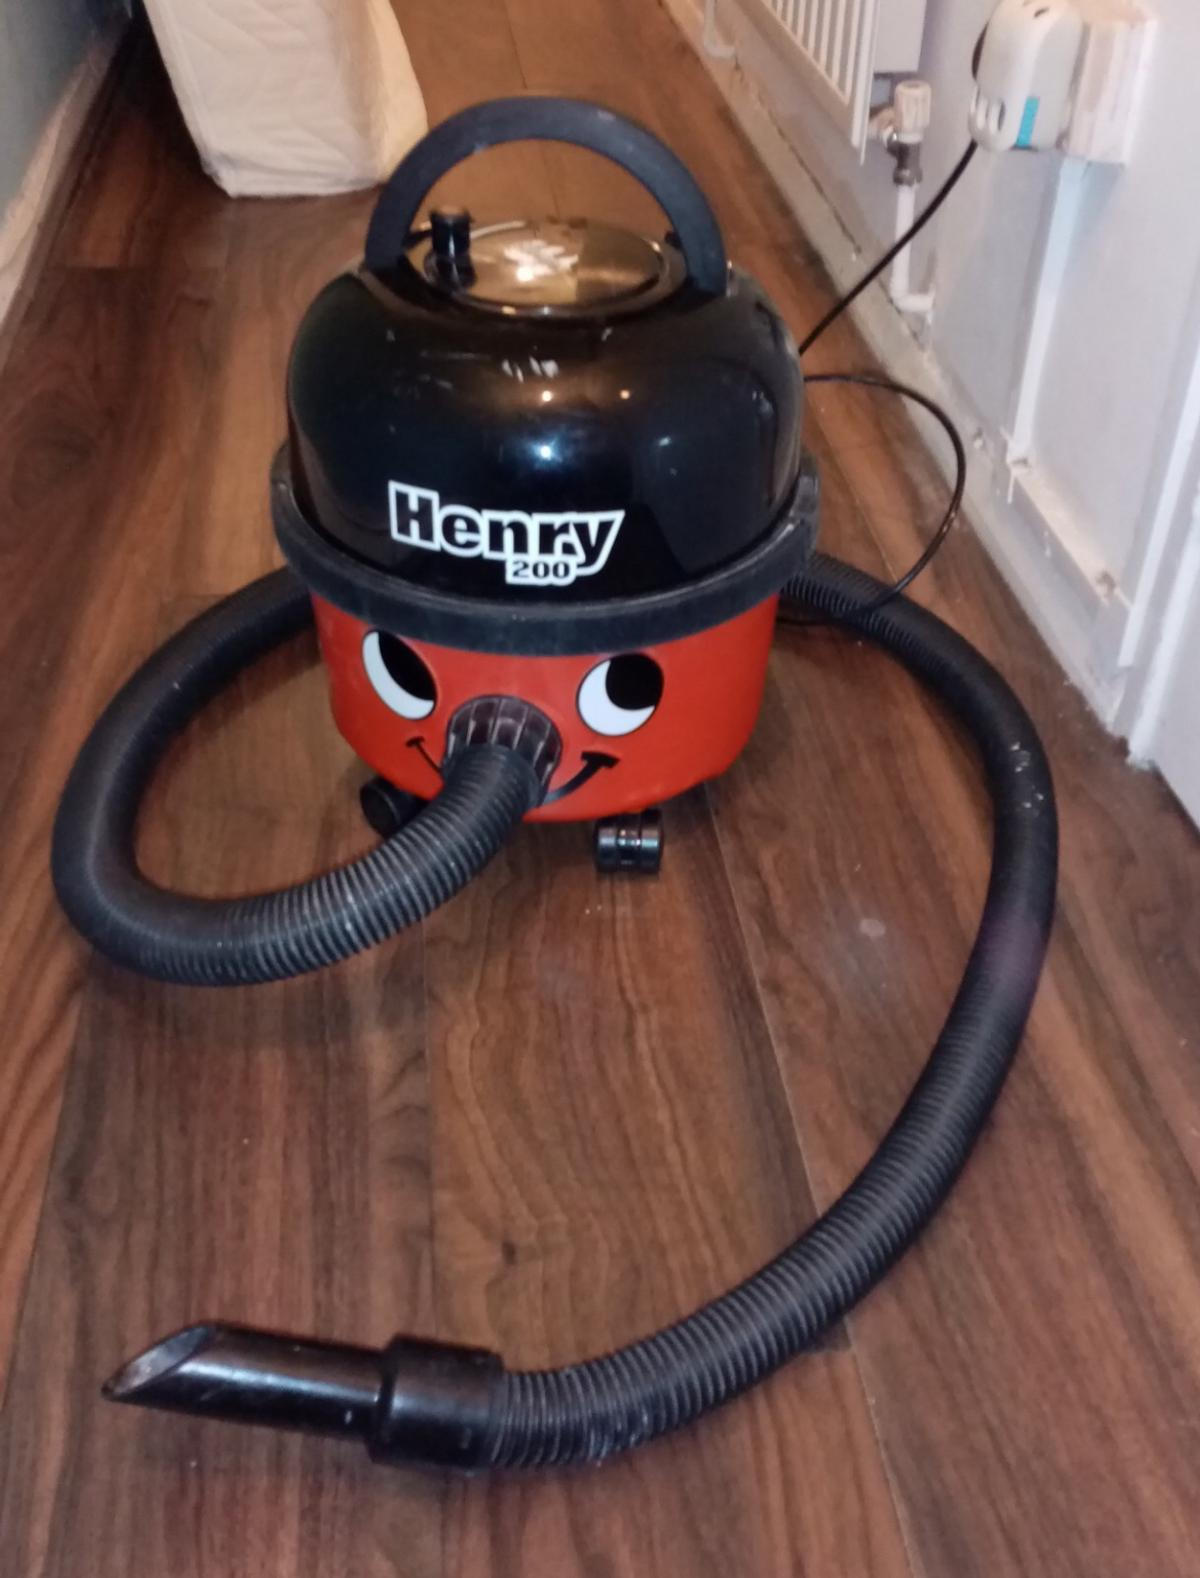 Henry hoover fully working order no attachments what you see is what u get u can get attachments of Shpock cheaply